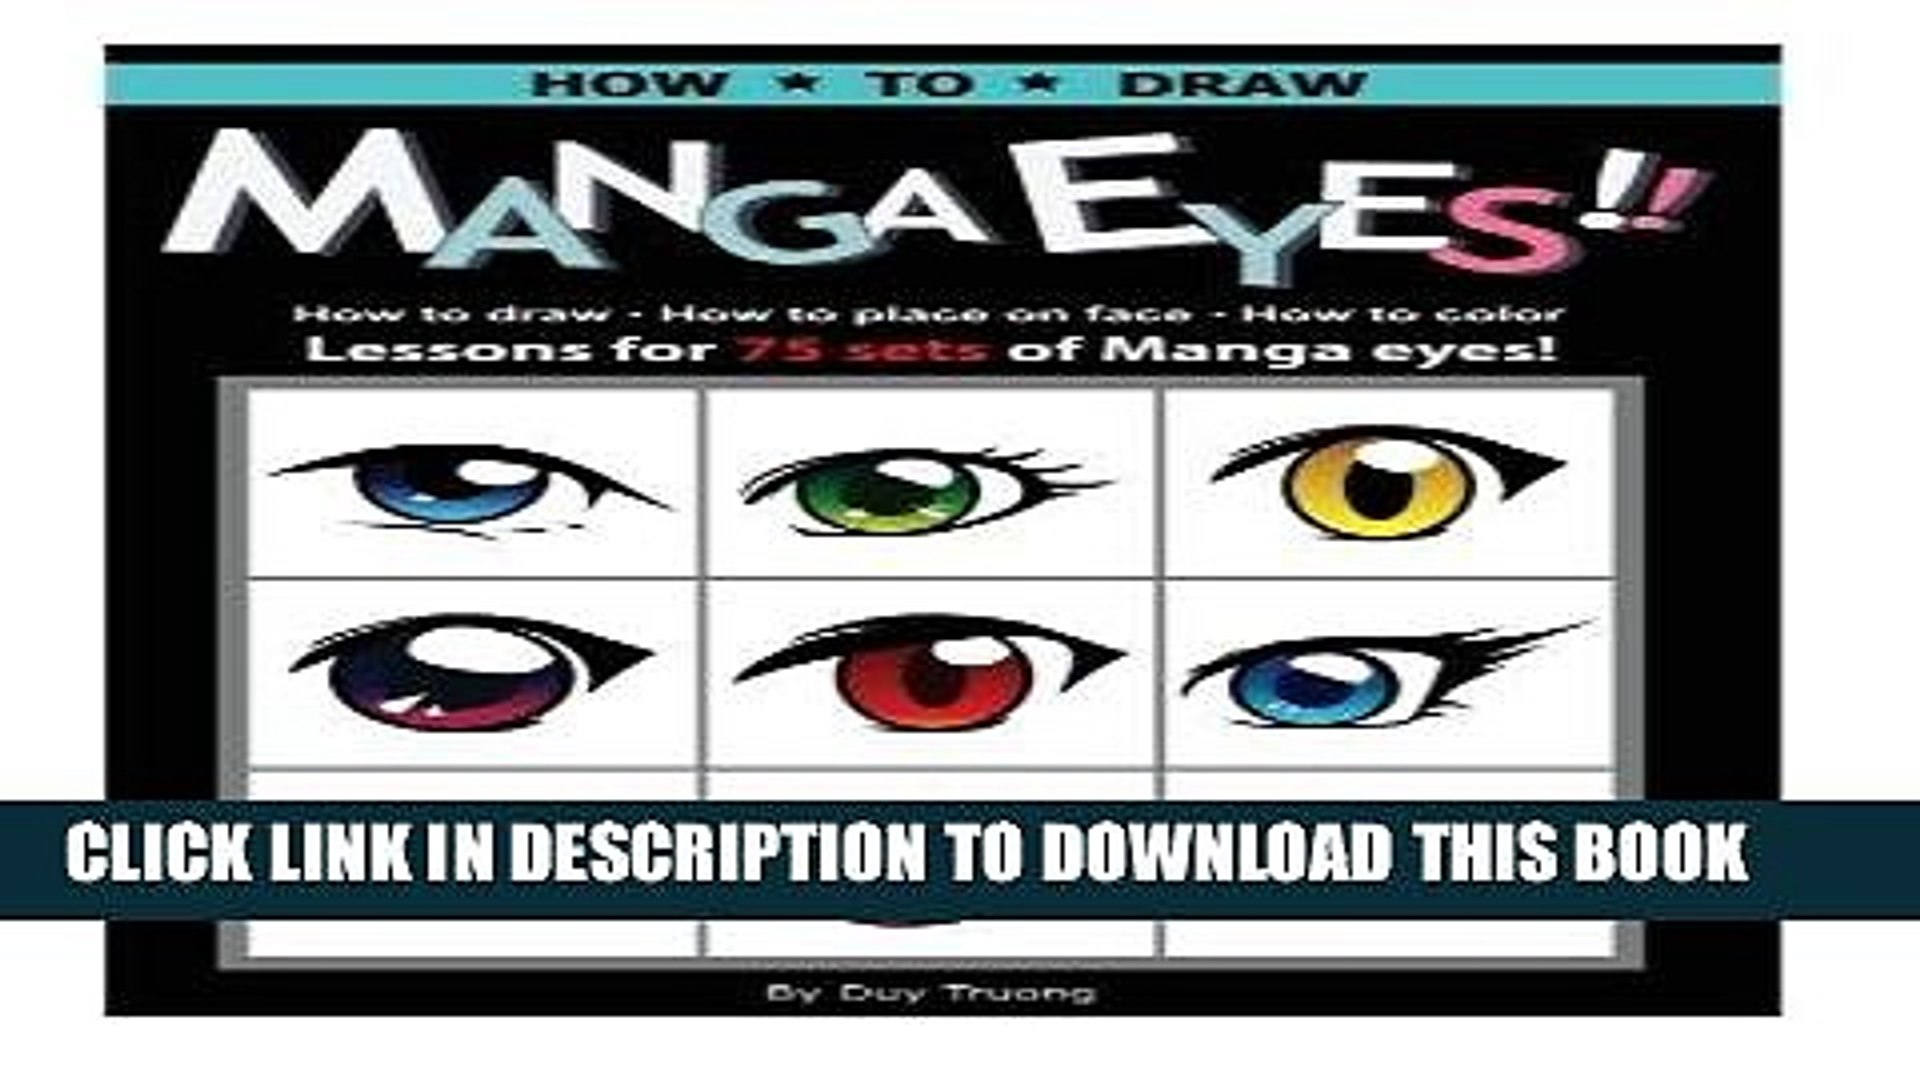 Read Now How to draw Manga eyes!! How to Draw- How to Place on Face-How to Color Lessons for 75